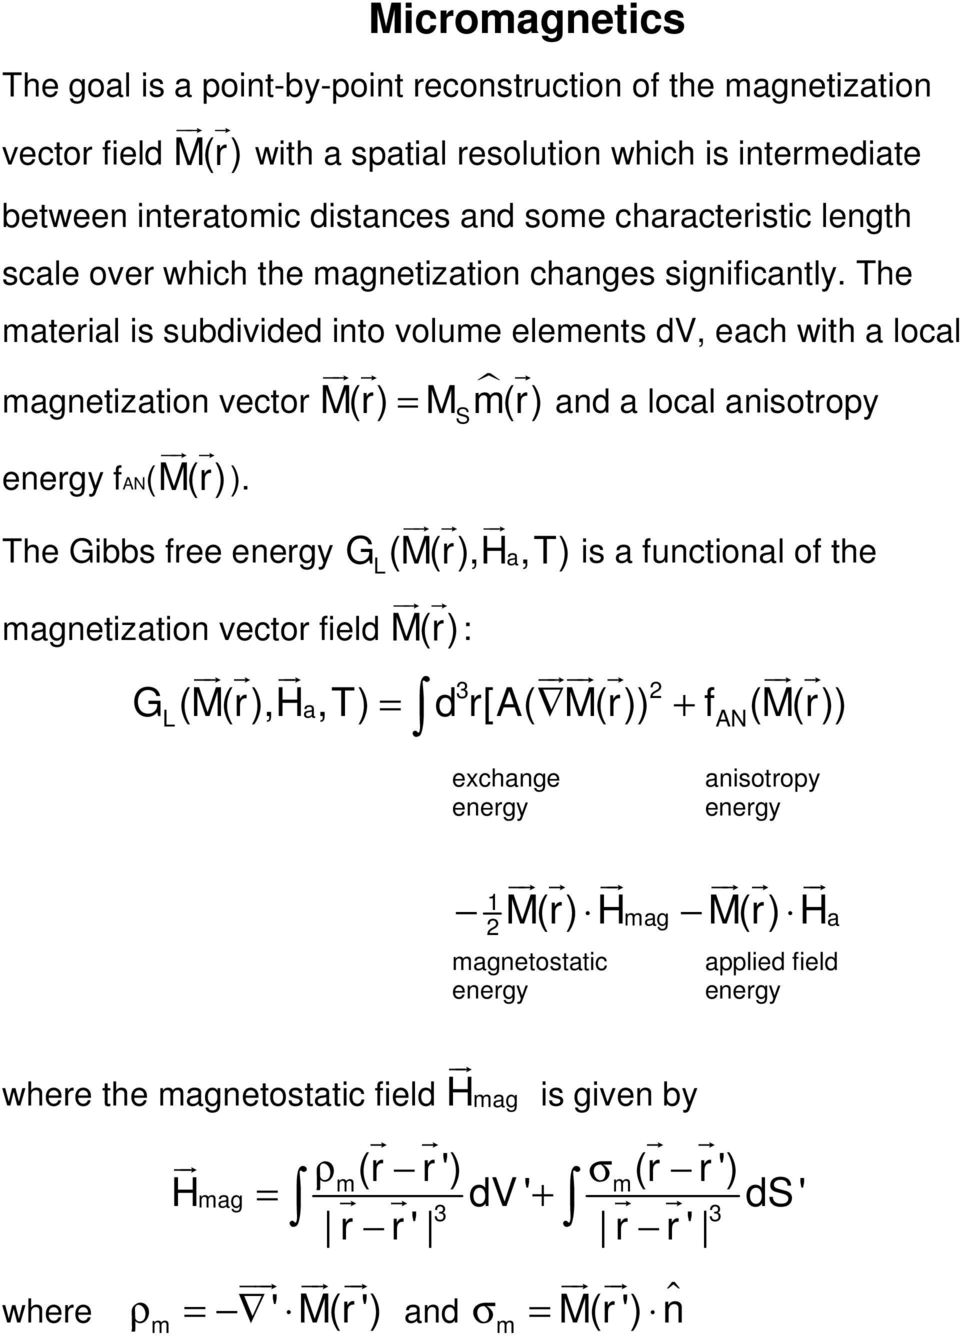 The Gibbs free energy magnetization vector field JG G G M(r) = M m(r) l and a local anisotropy S JG G JG G(M(r),H,T) L a is a functional of the JG G M(r) : JG G JG JGJG G JG G 3 2 G(M(r),H,T) a =